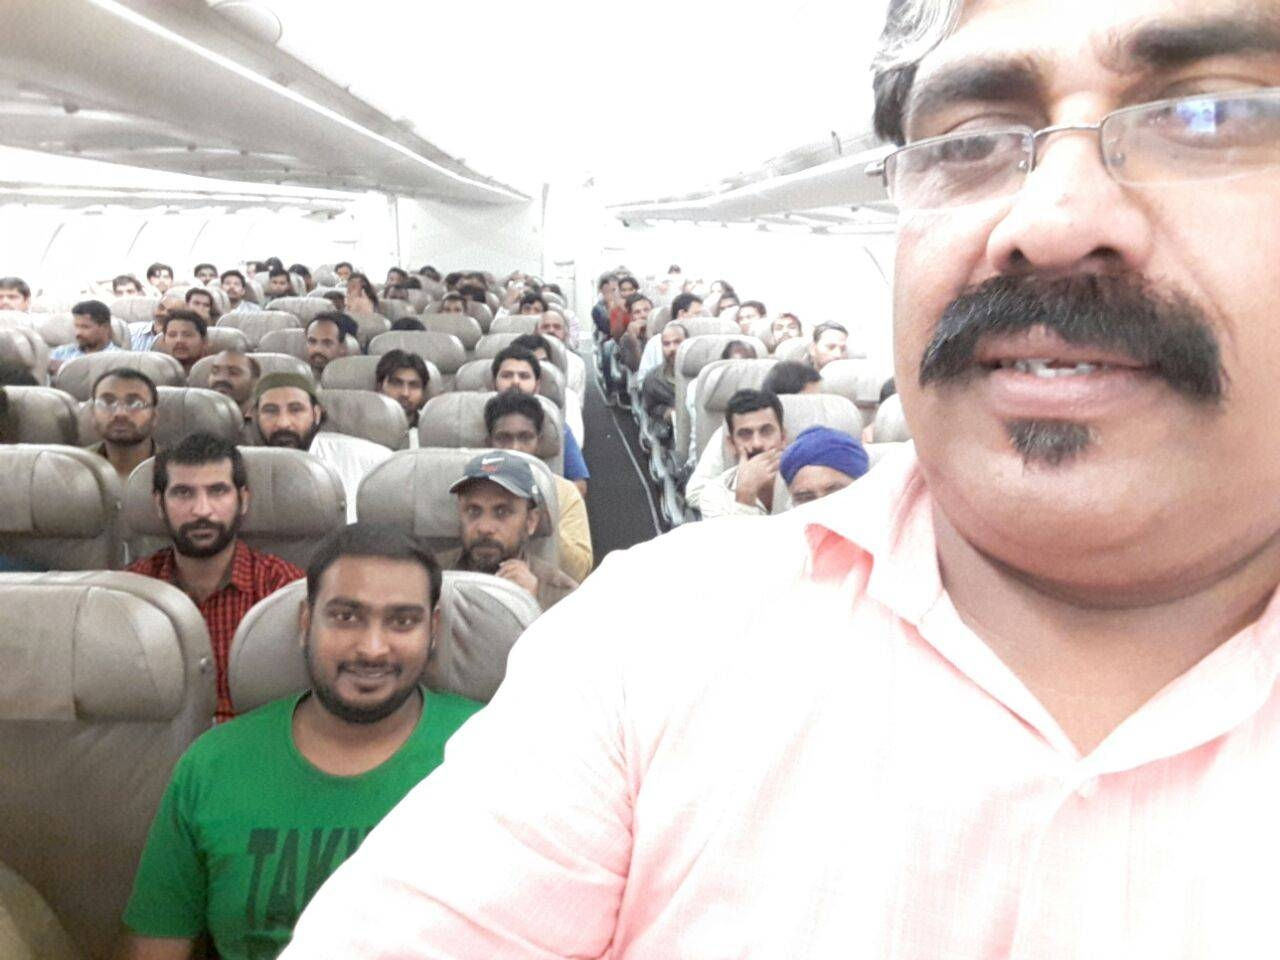 Shoukat Nass travels with a group of 150 deportees to Kochi, India.